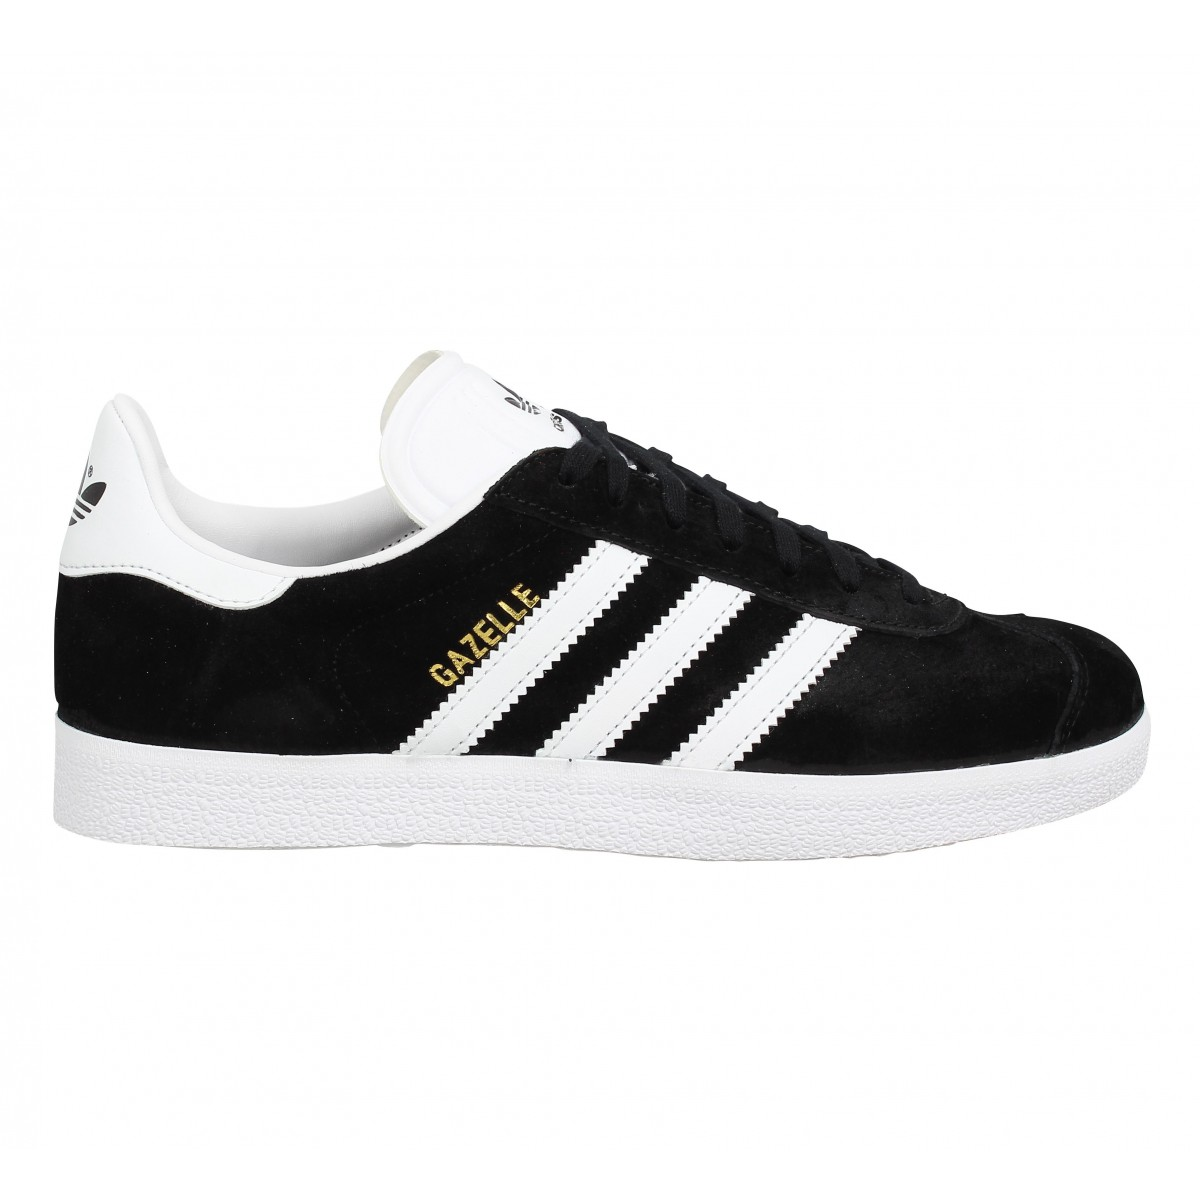 soldes adidas gazelle velours femme noir blanc fanny chaussures. Black Bedroom Furniture Sets. Home Design Ideas